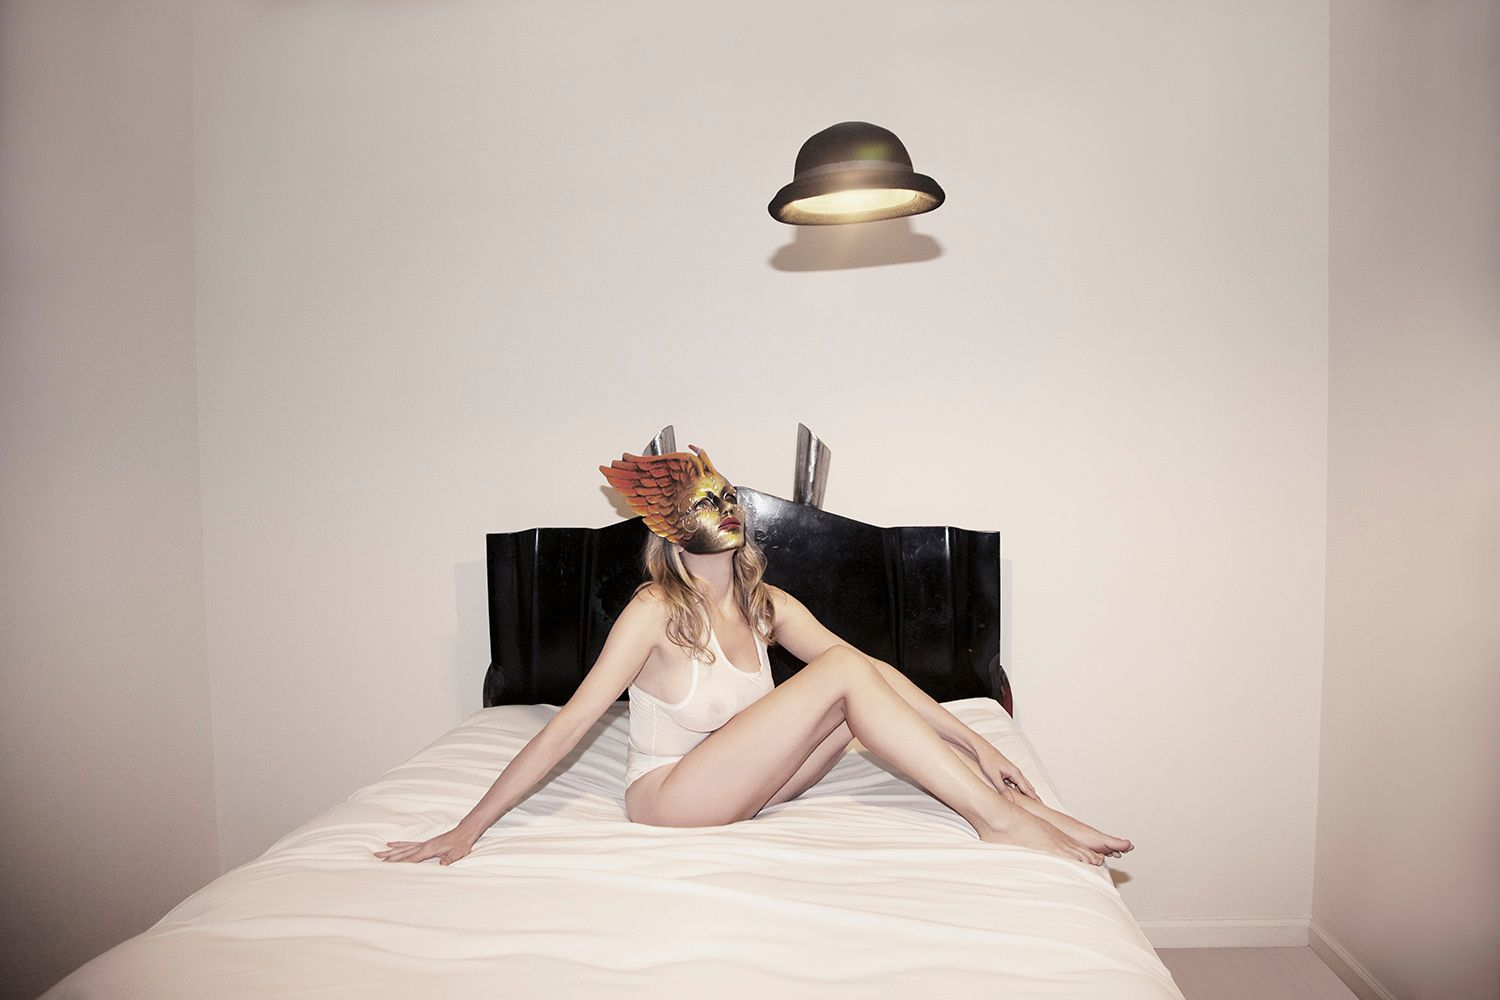 1r2013_10_28_andrea_winged_mask_508_2_